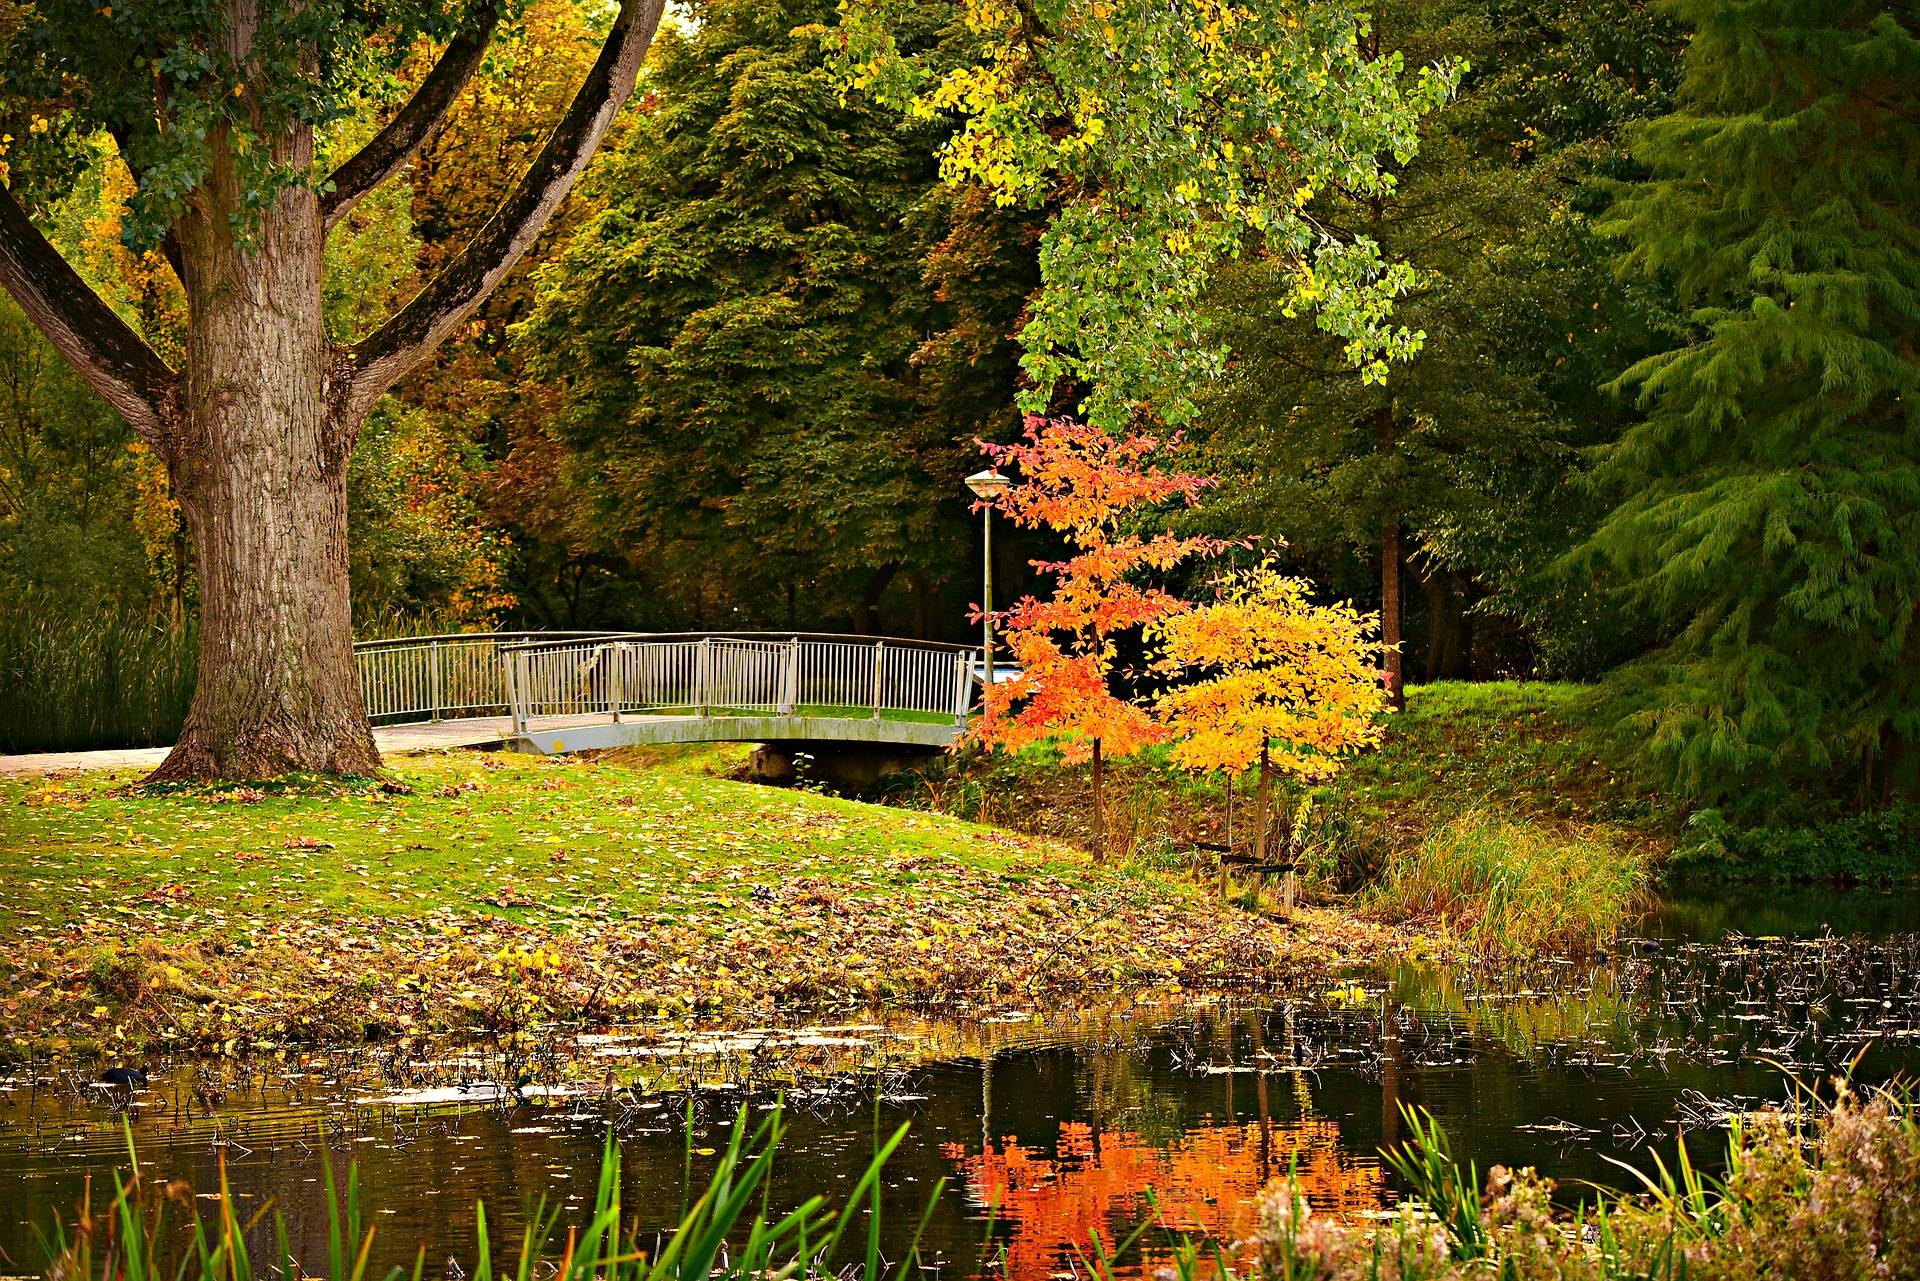 Park with a pond and large tree in the fall, yellow, red leaves